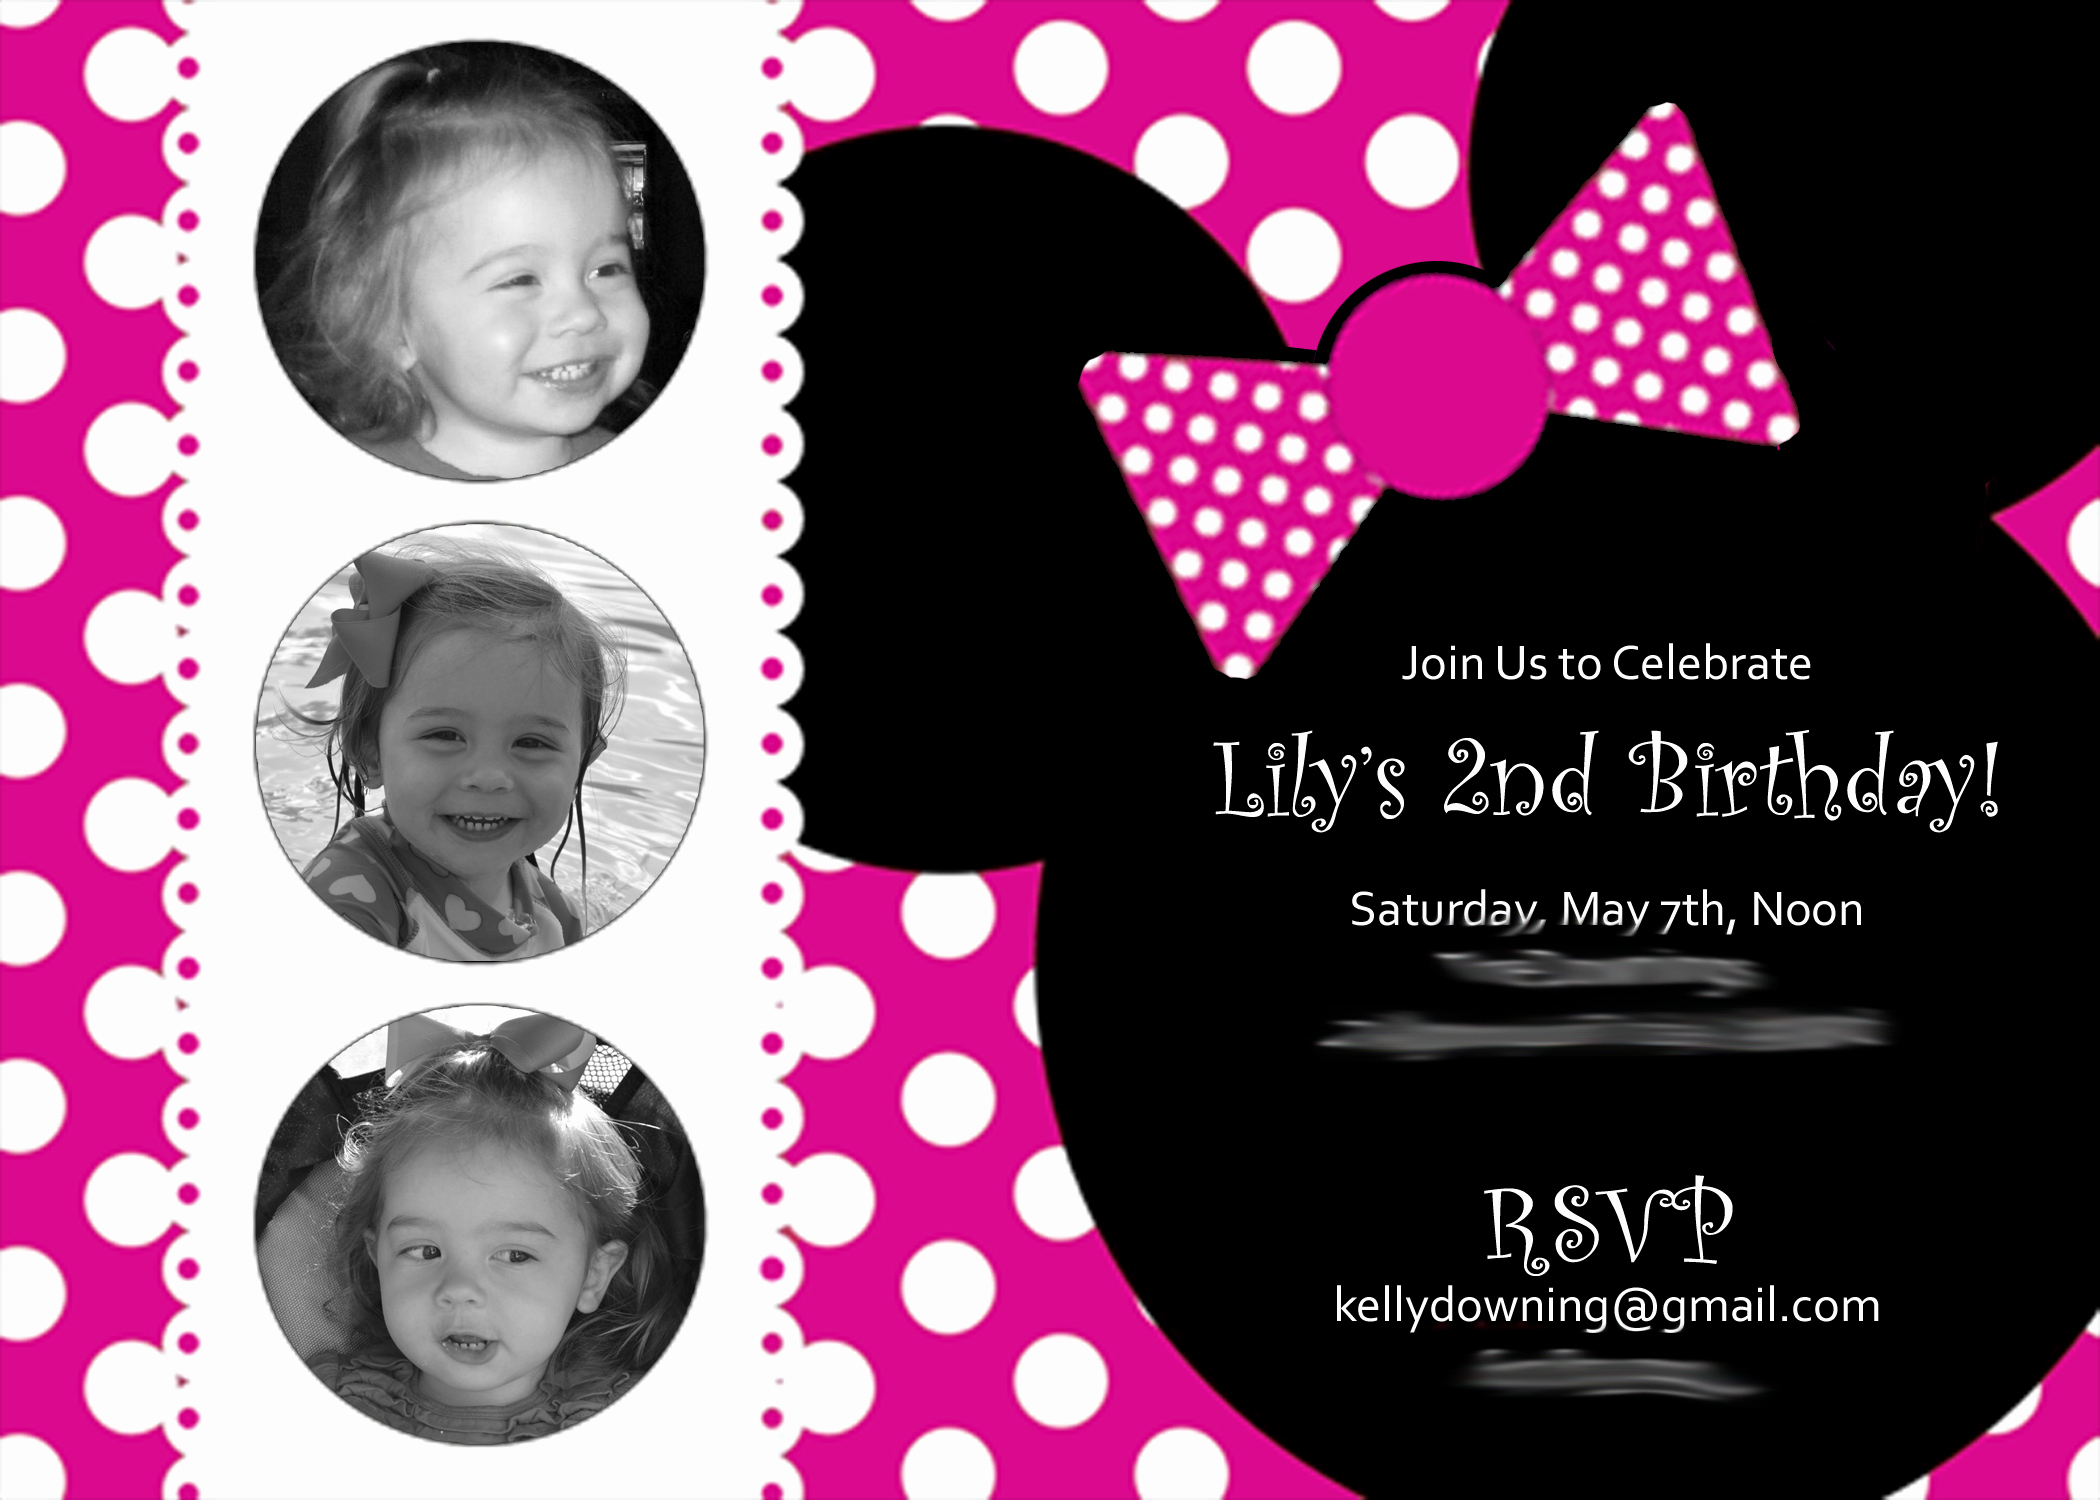 Minnie Mouse Birthday Invitation Template Awesome A Two Year's Olds Mini Minnie Birthday Party